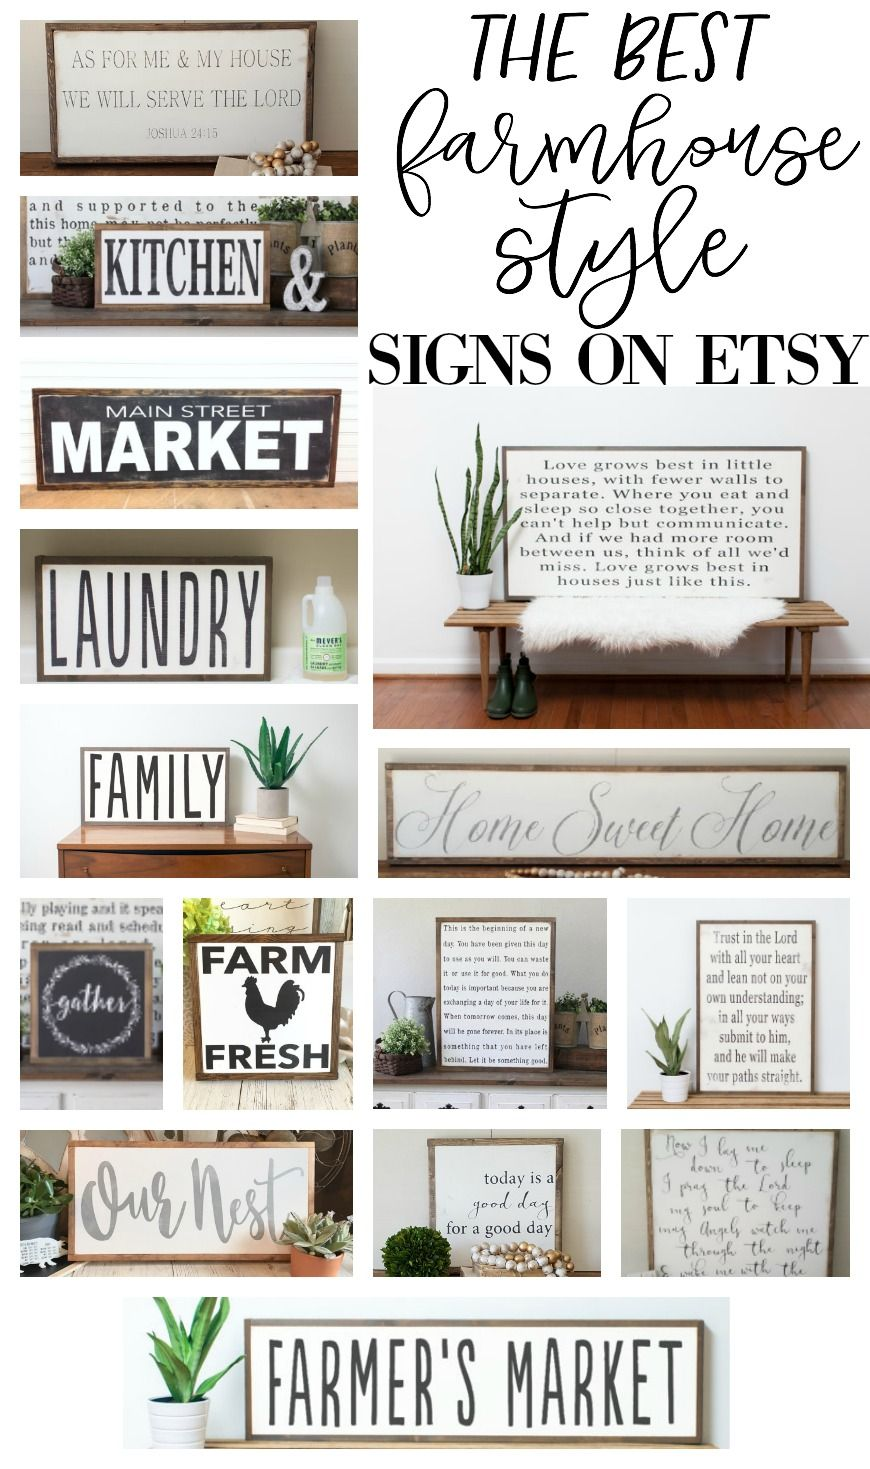 The Best Farmhouse Style Signs on Etsy | Farmhouse style, Etsy and House